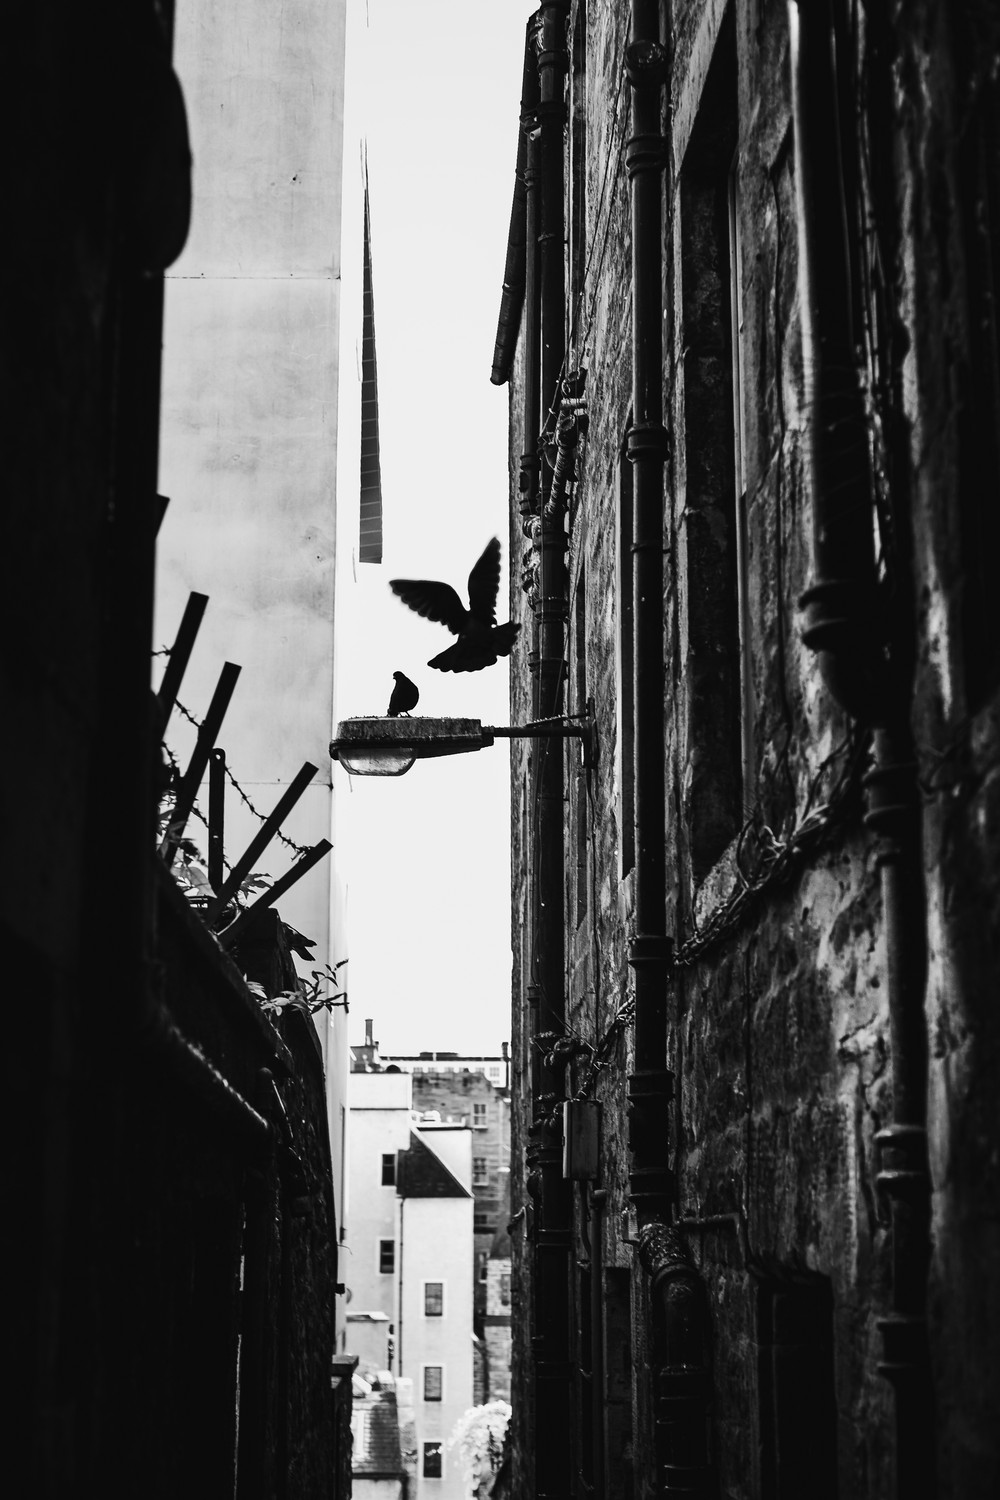 edinburgh-close-pidgeon